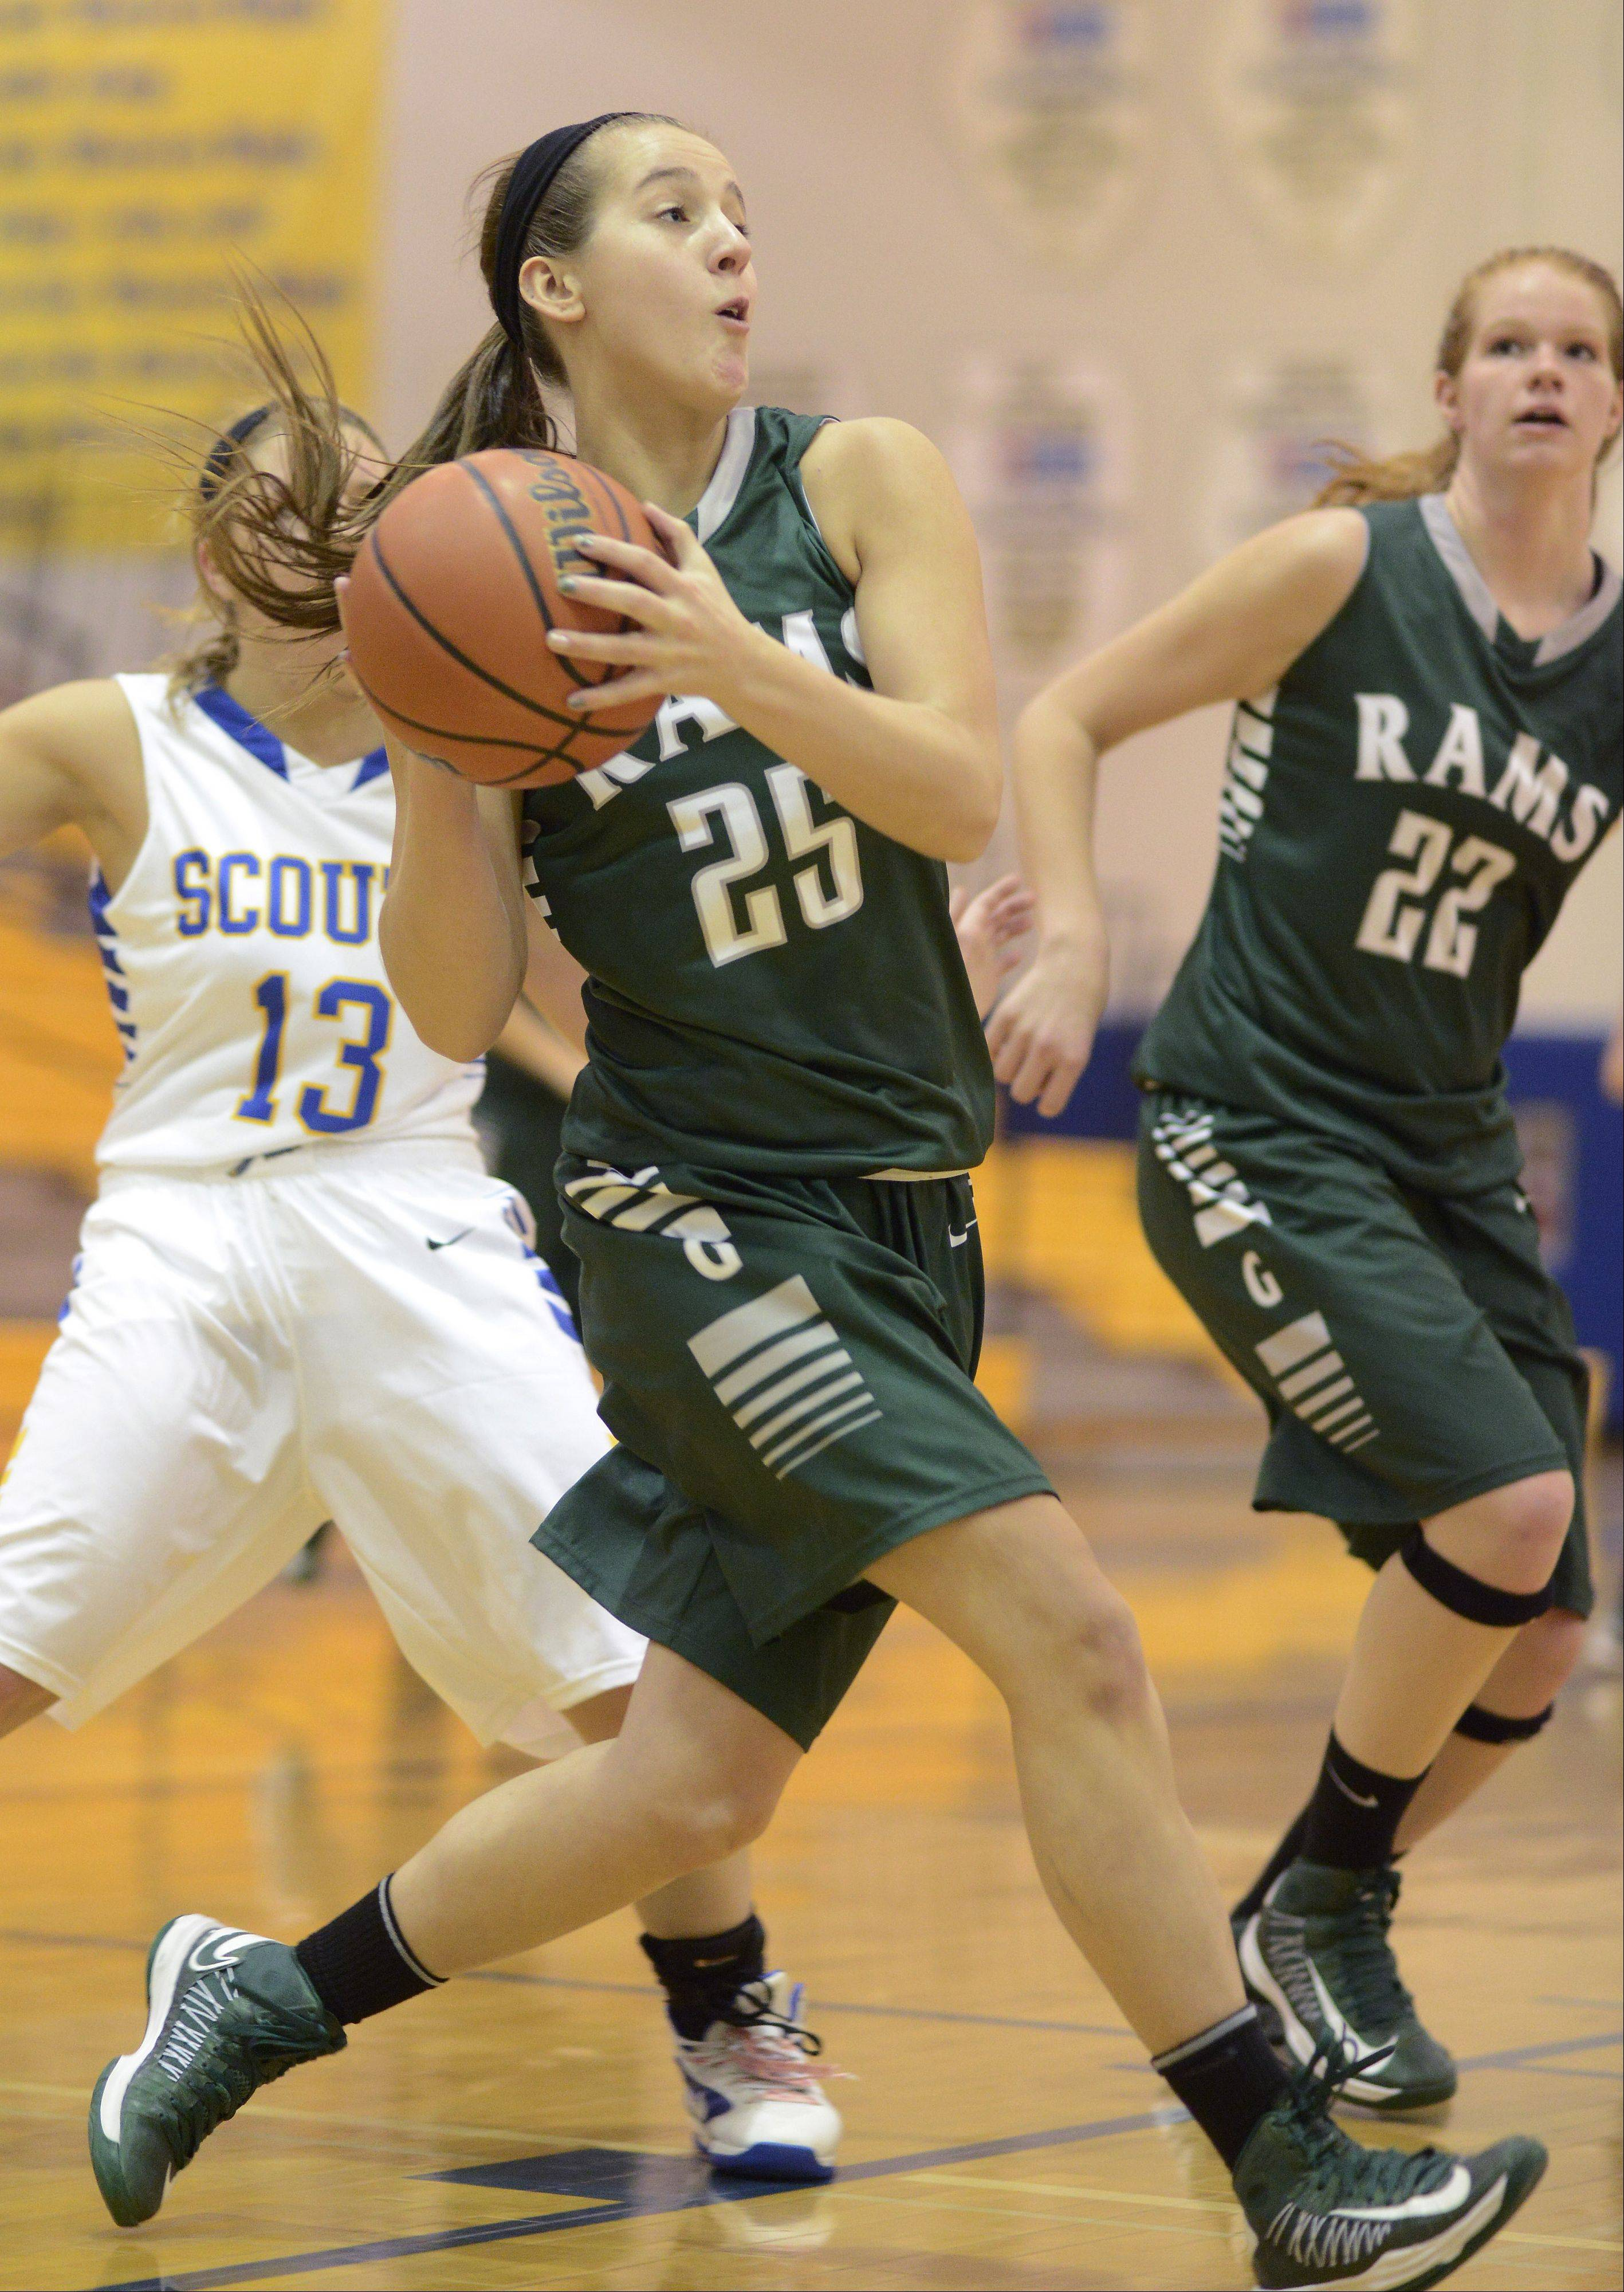 Grayslake Central's Taylor Peterson drives to the basket against Lake Forest during Saturday's game at Warren.